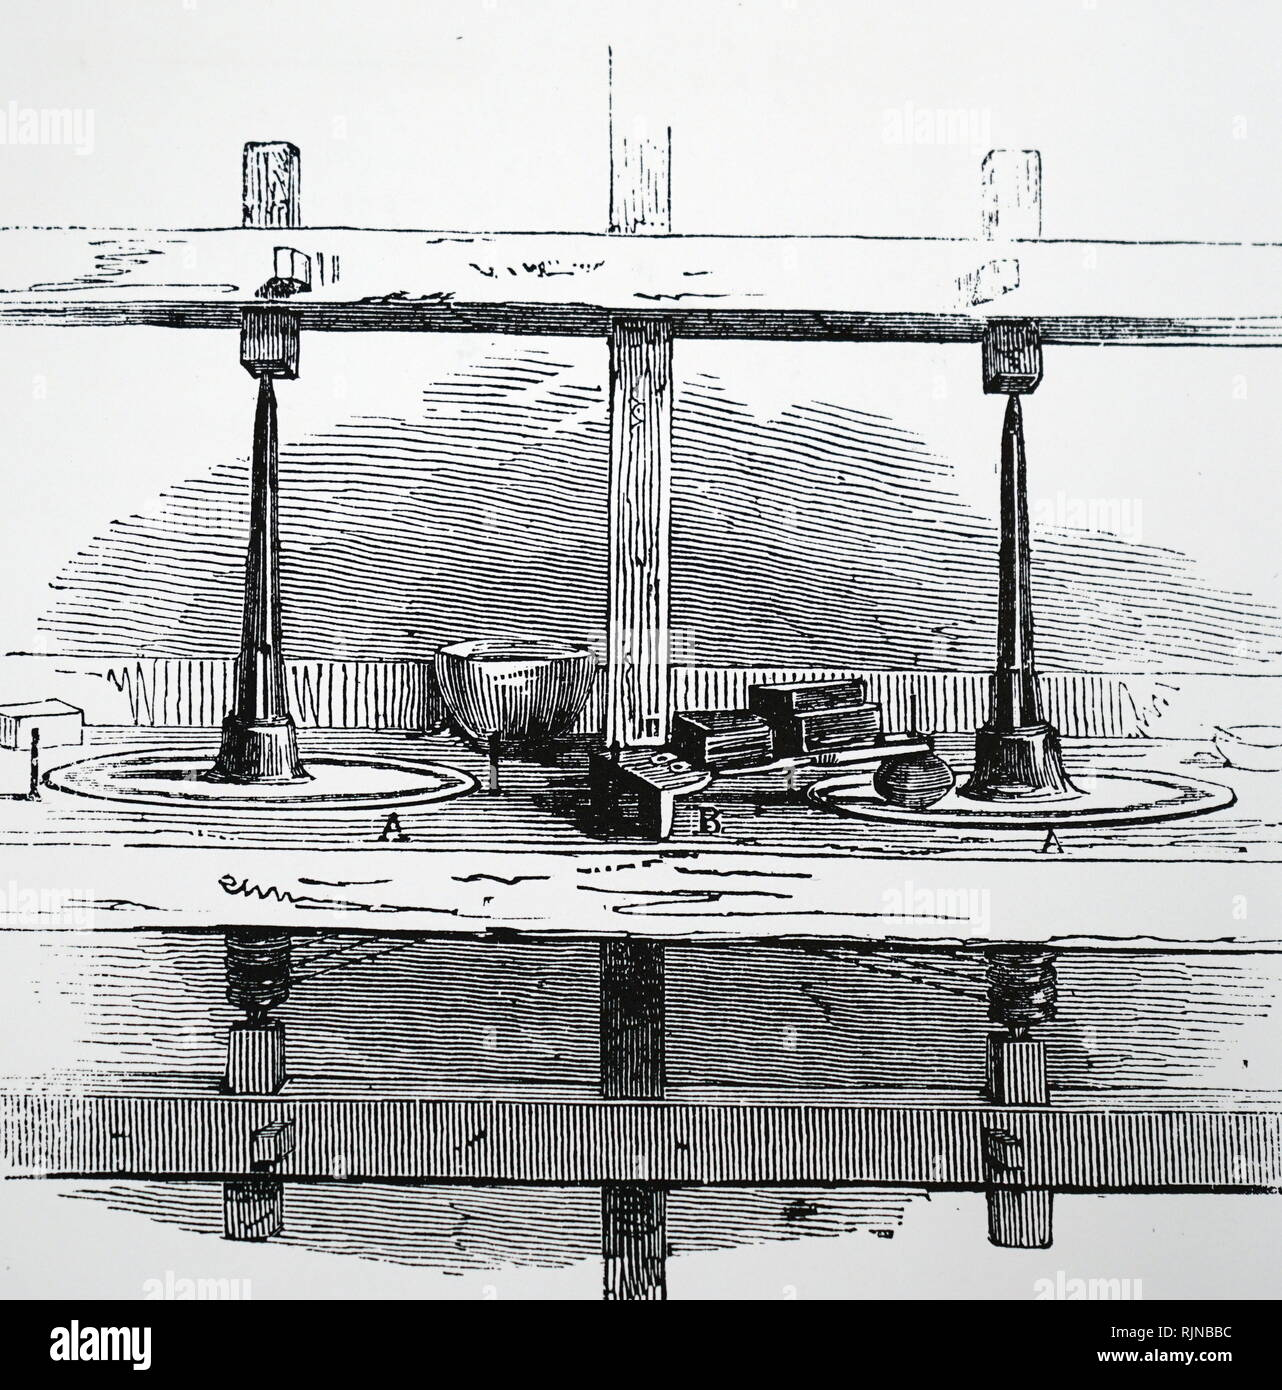 An engraving depicting Lapidaries' table used for the re-cutting of the Koh-I-Noor diamond. Dated 19th century - Stock Image